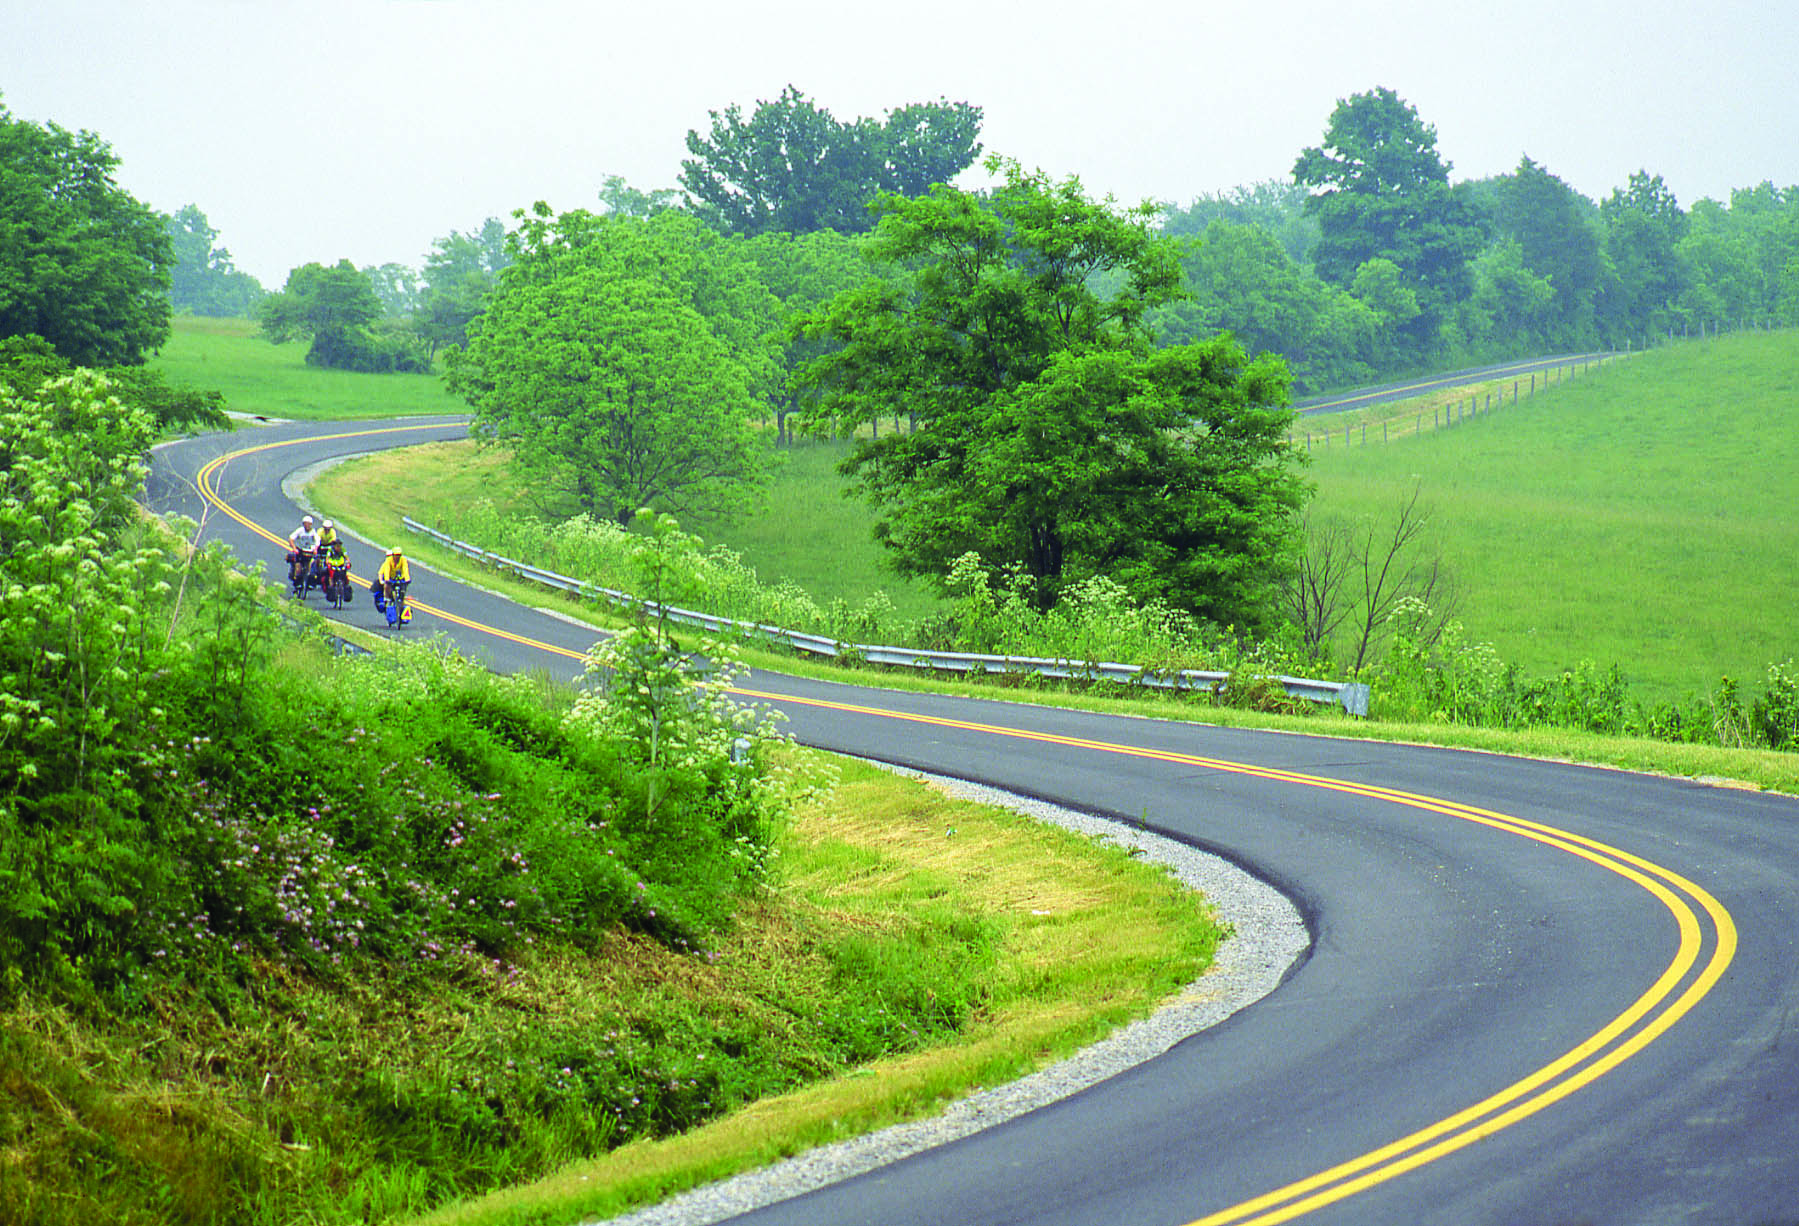 Four bikers make their way down a winding, downhill country road.